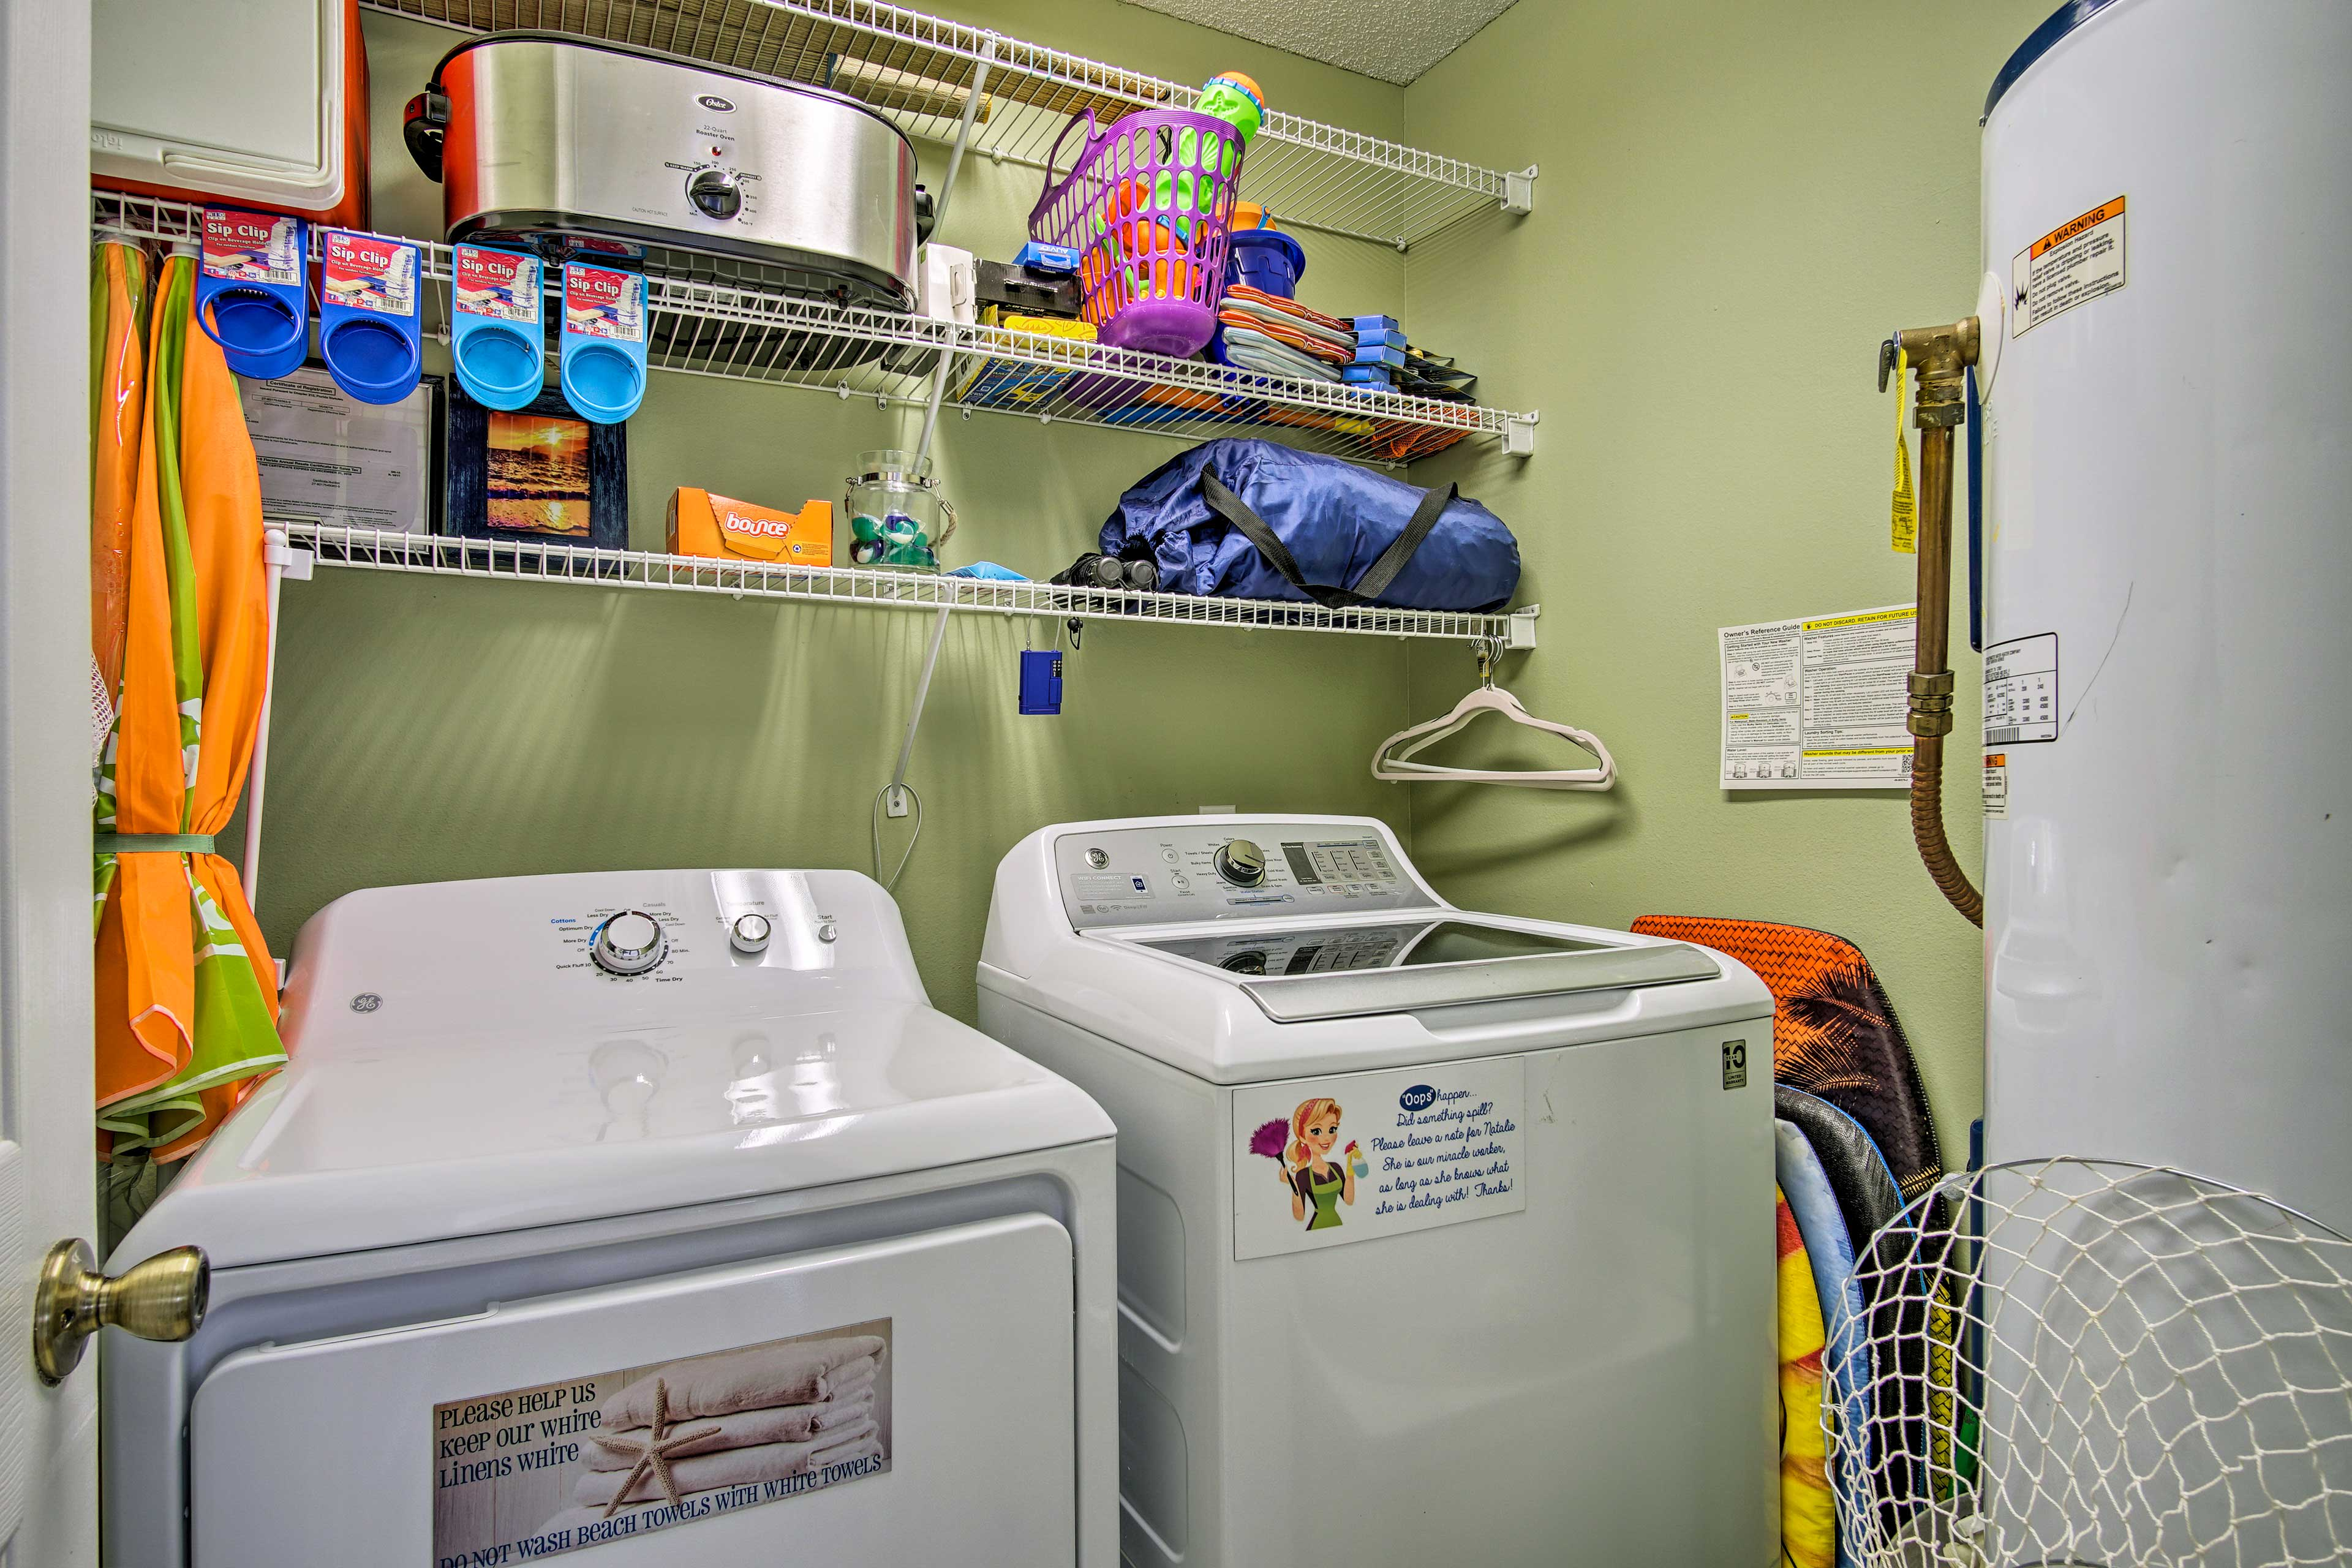 Rinse off those dirty clothes before another adventurous day!